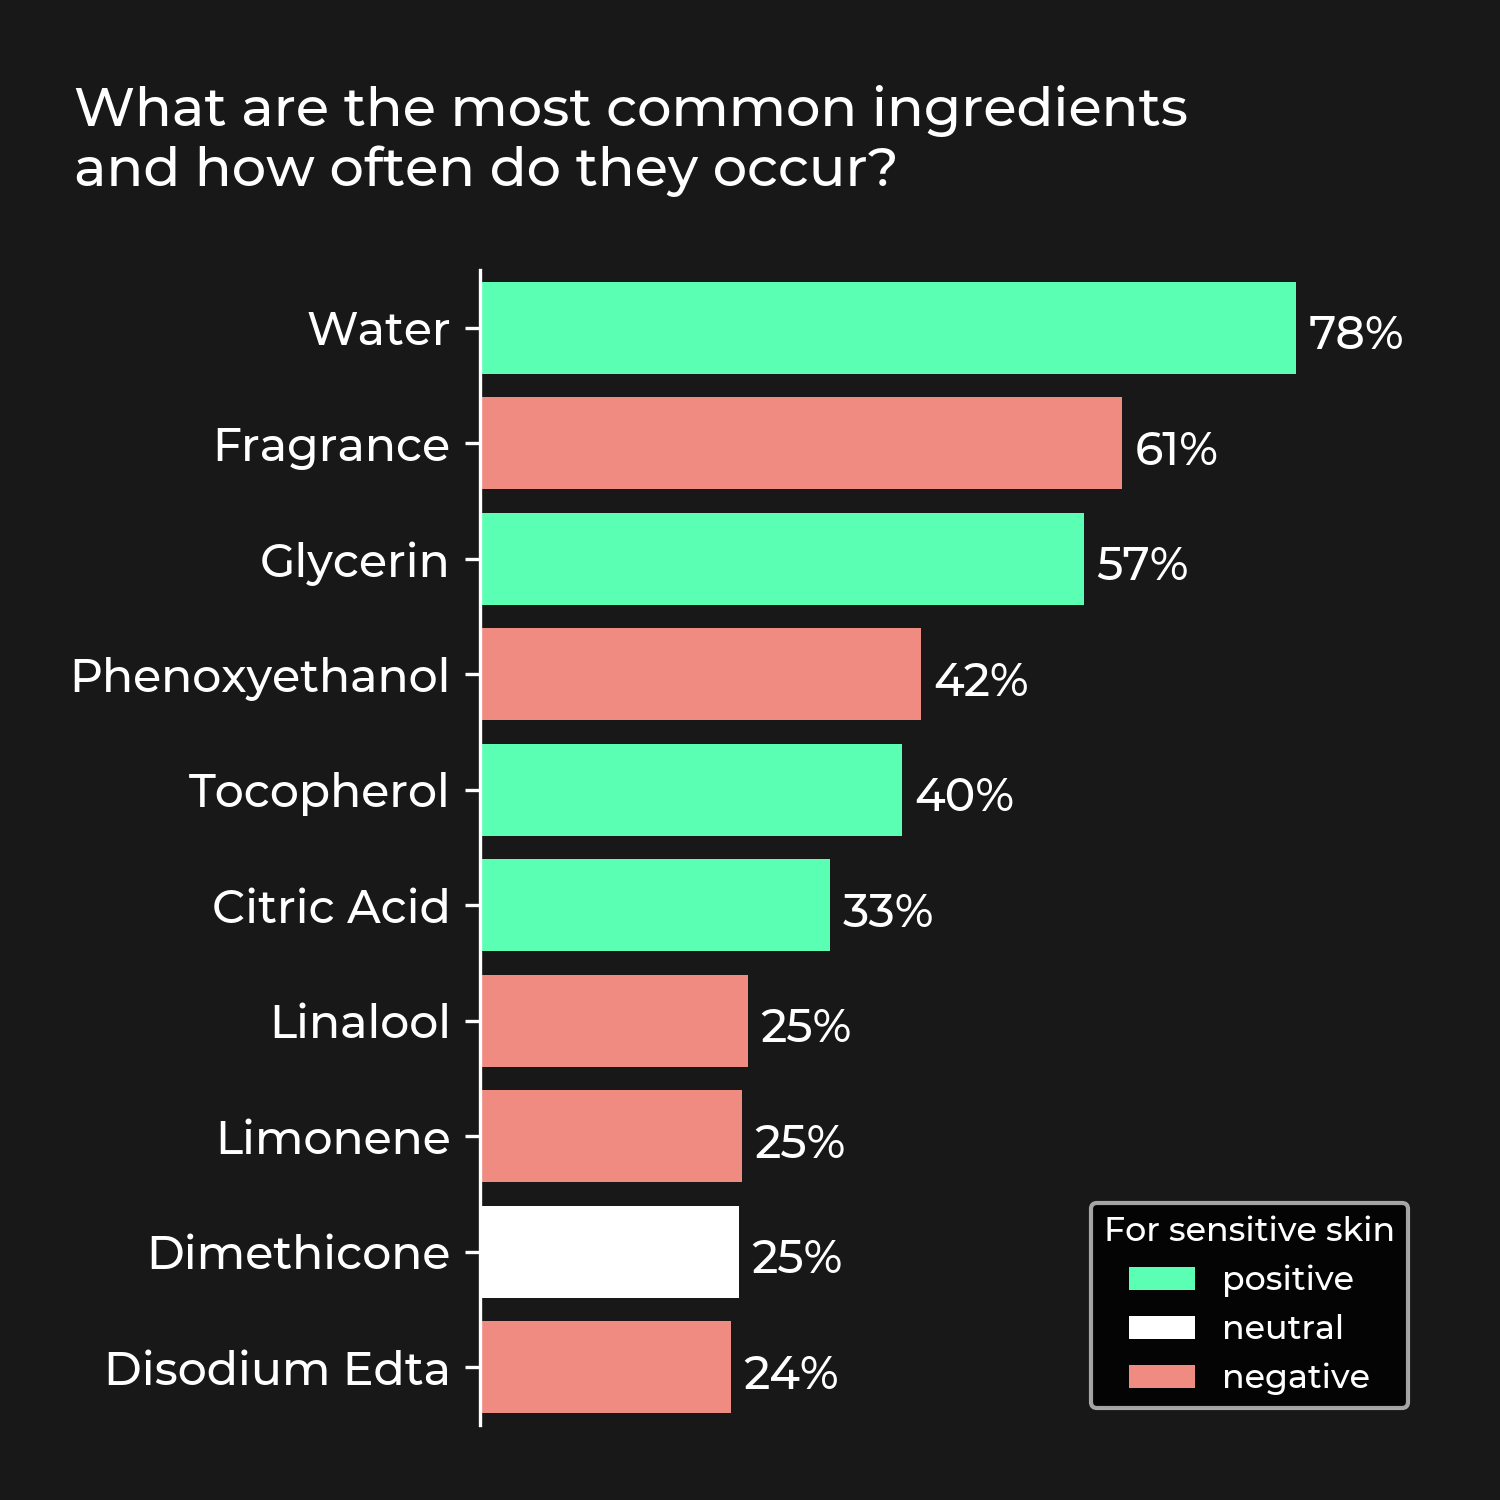 Most common ingredients